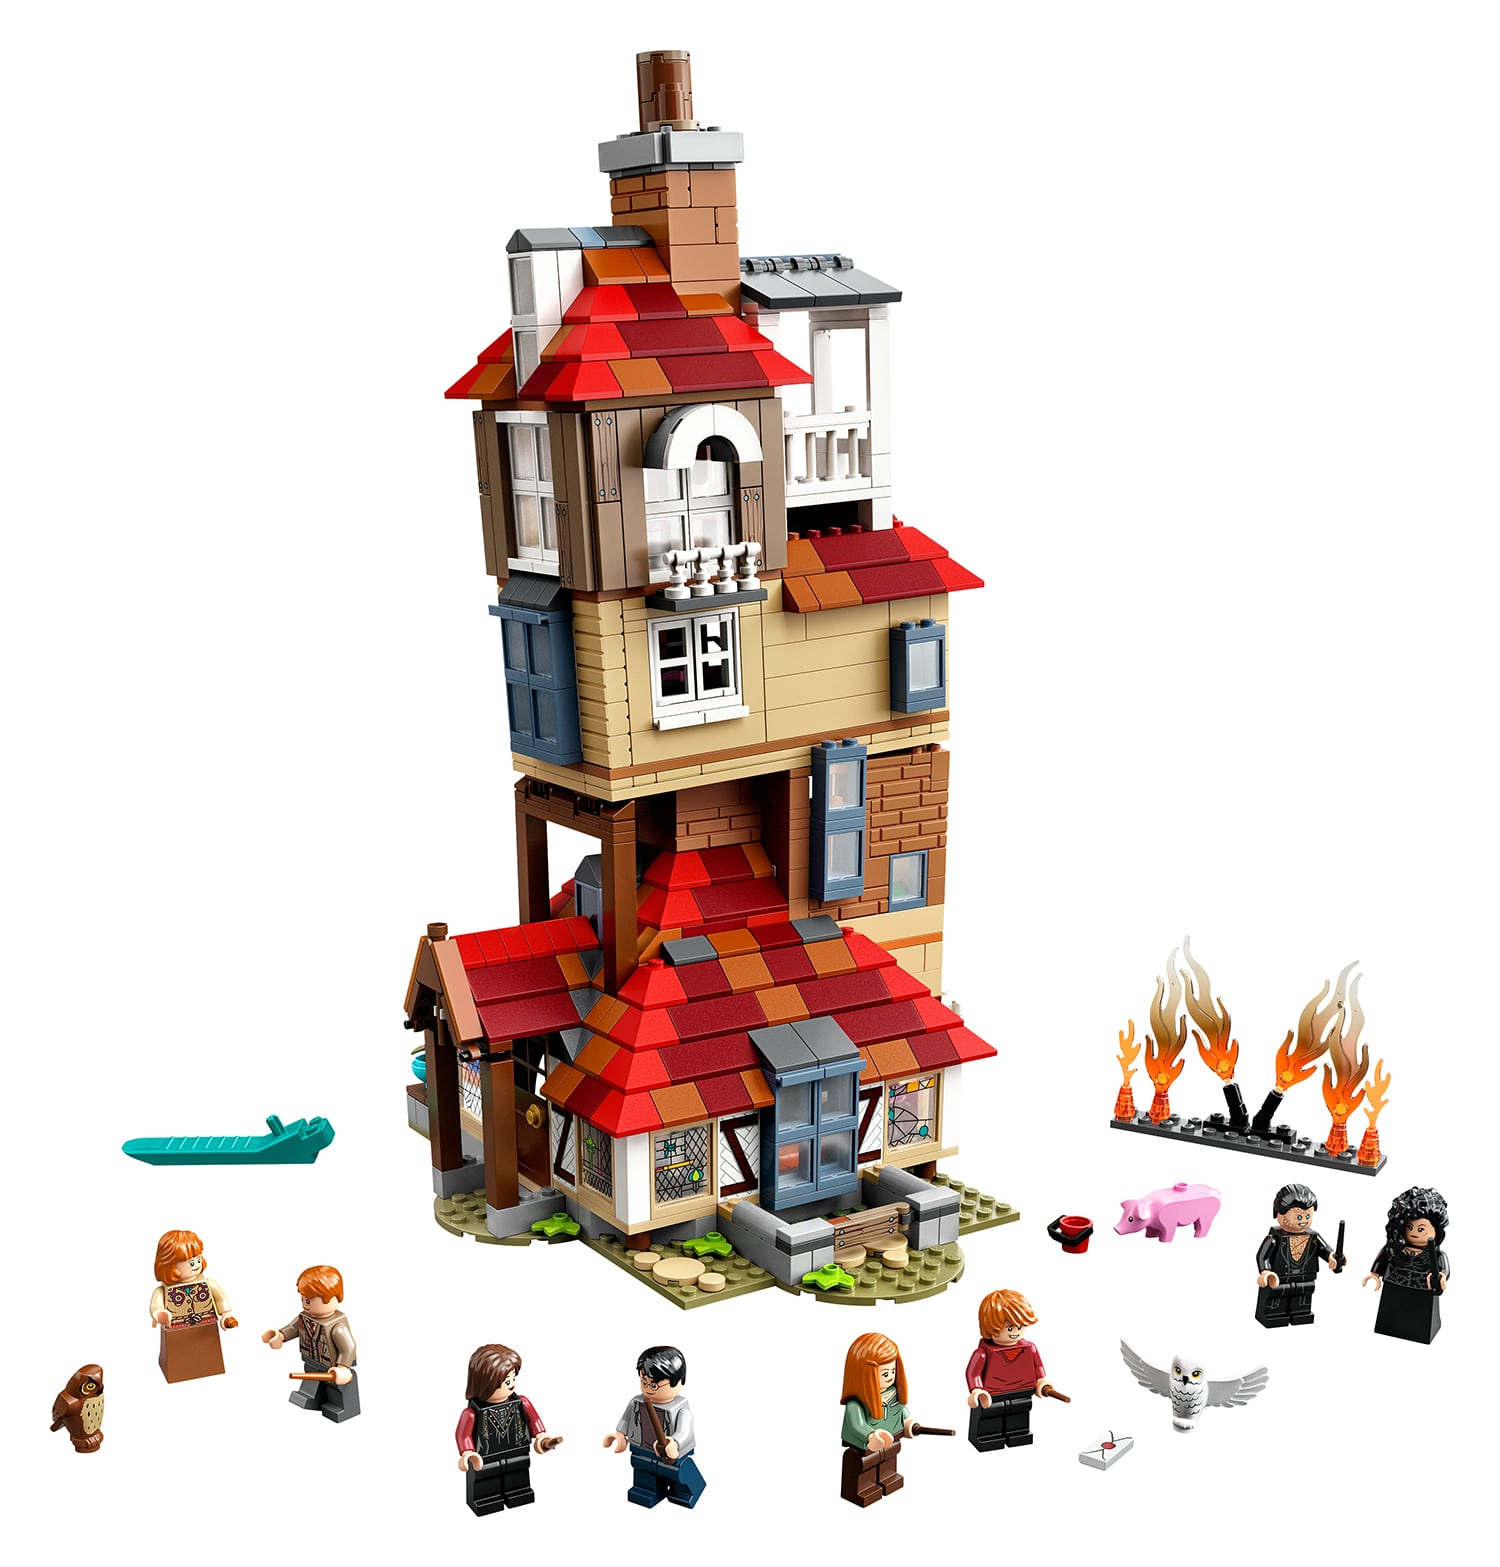 LEGO expands its Harry Potter collection with new Wizarding World playsets 17